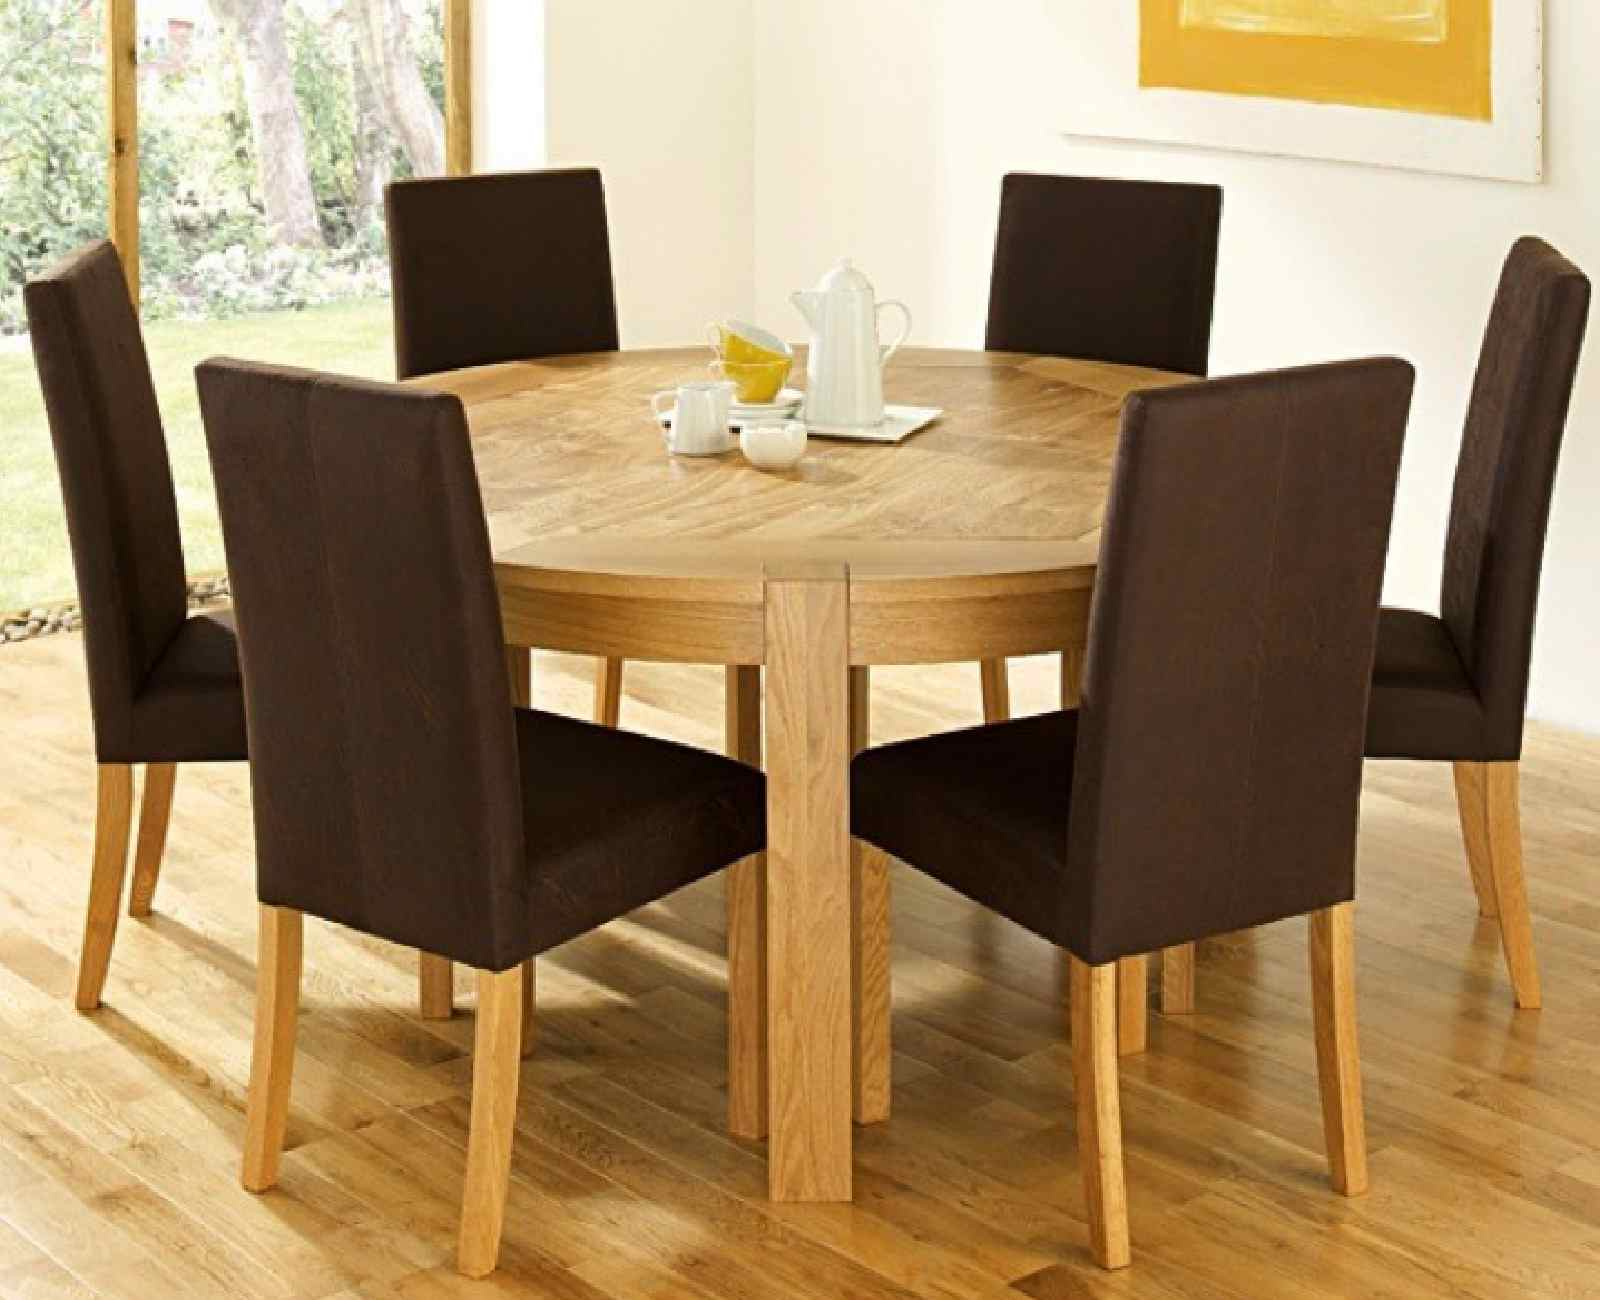 pc highland home round pedestal dining room furniture set